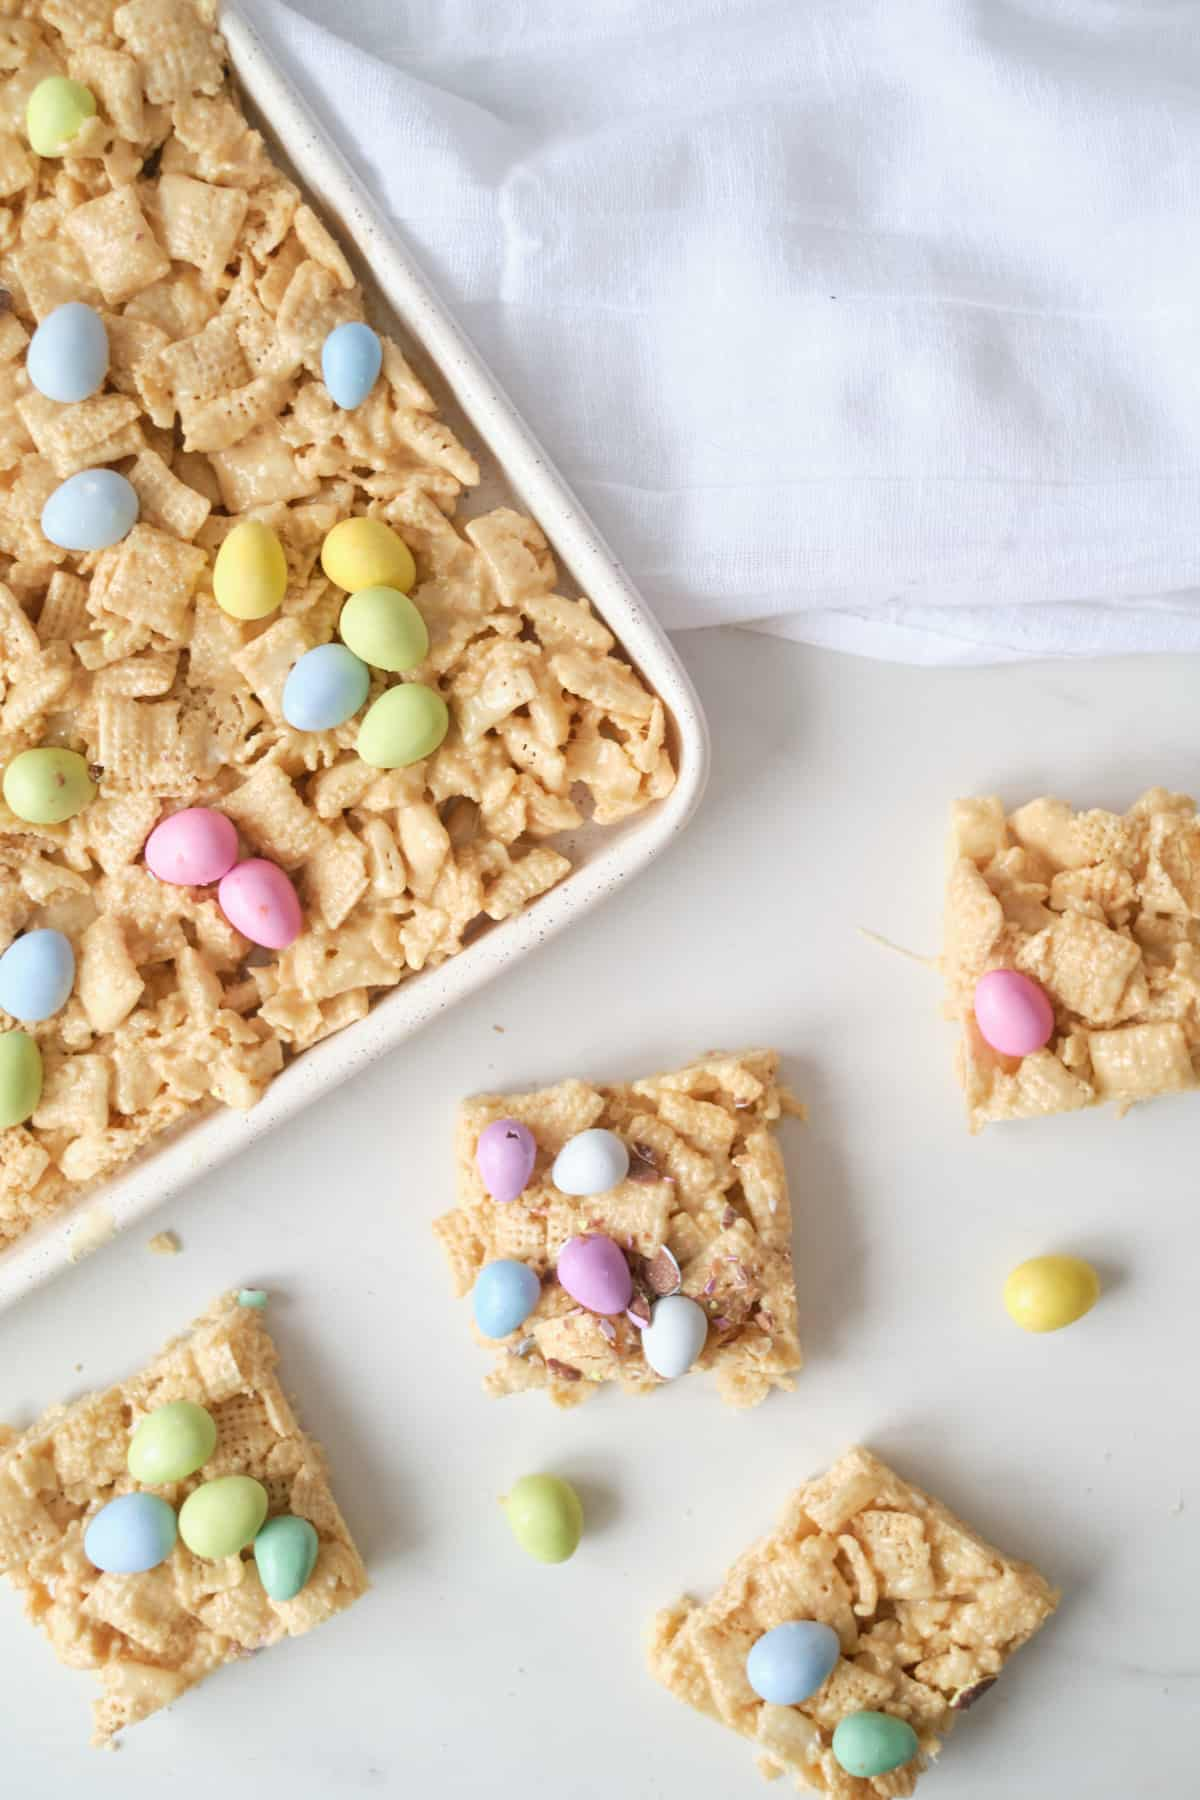 top down view of the completed no bake chex bars with mini eggs